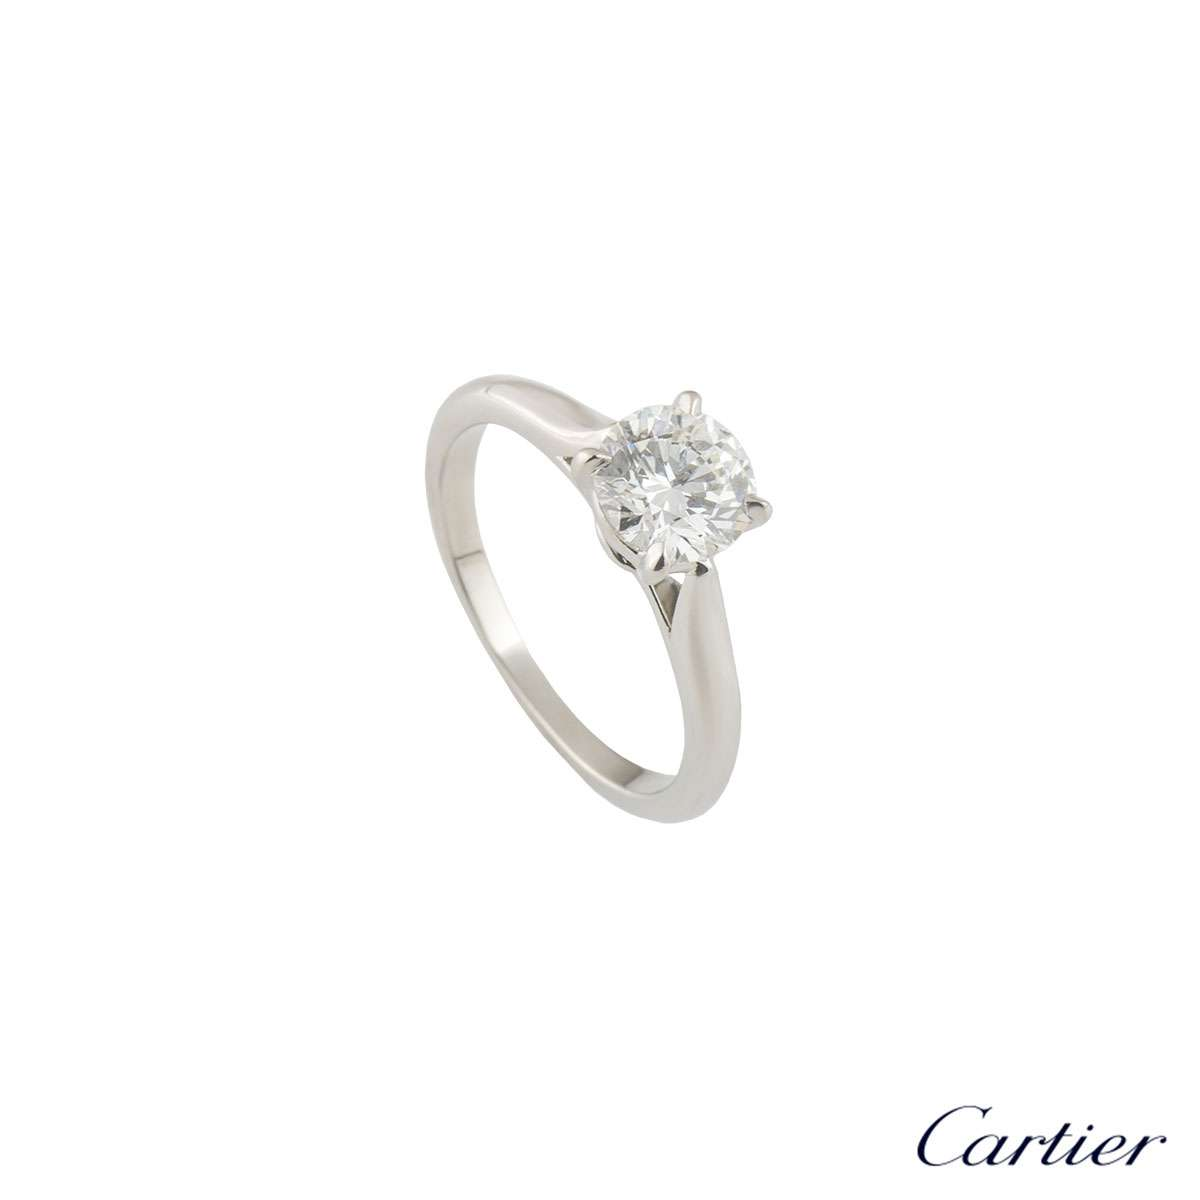 Cartier Platinum Diamond 1895 Solitaire Ring 1.02ct F/VVS2